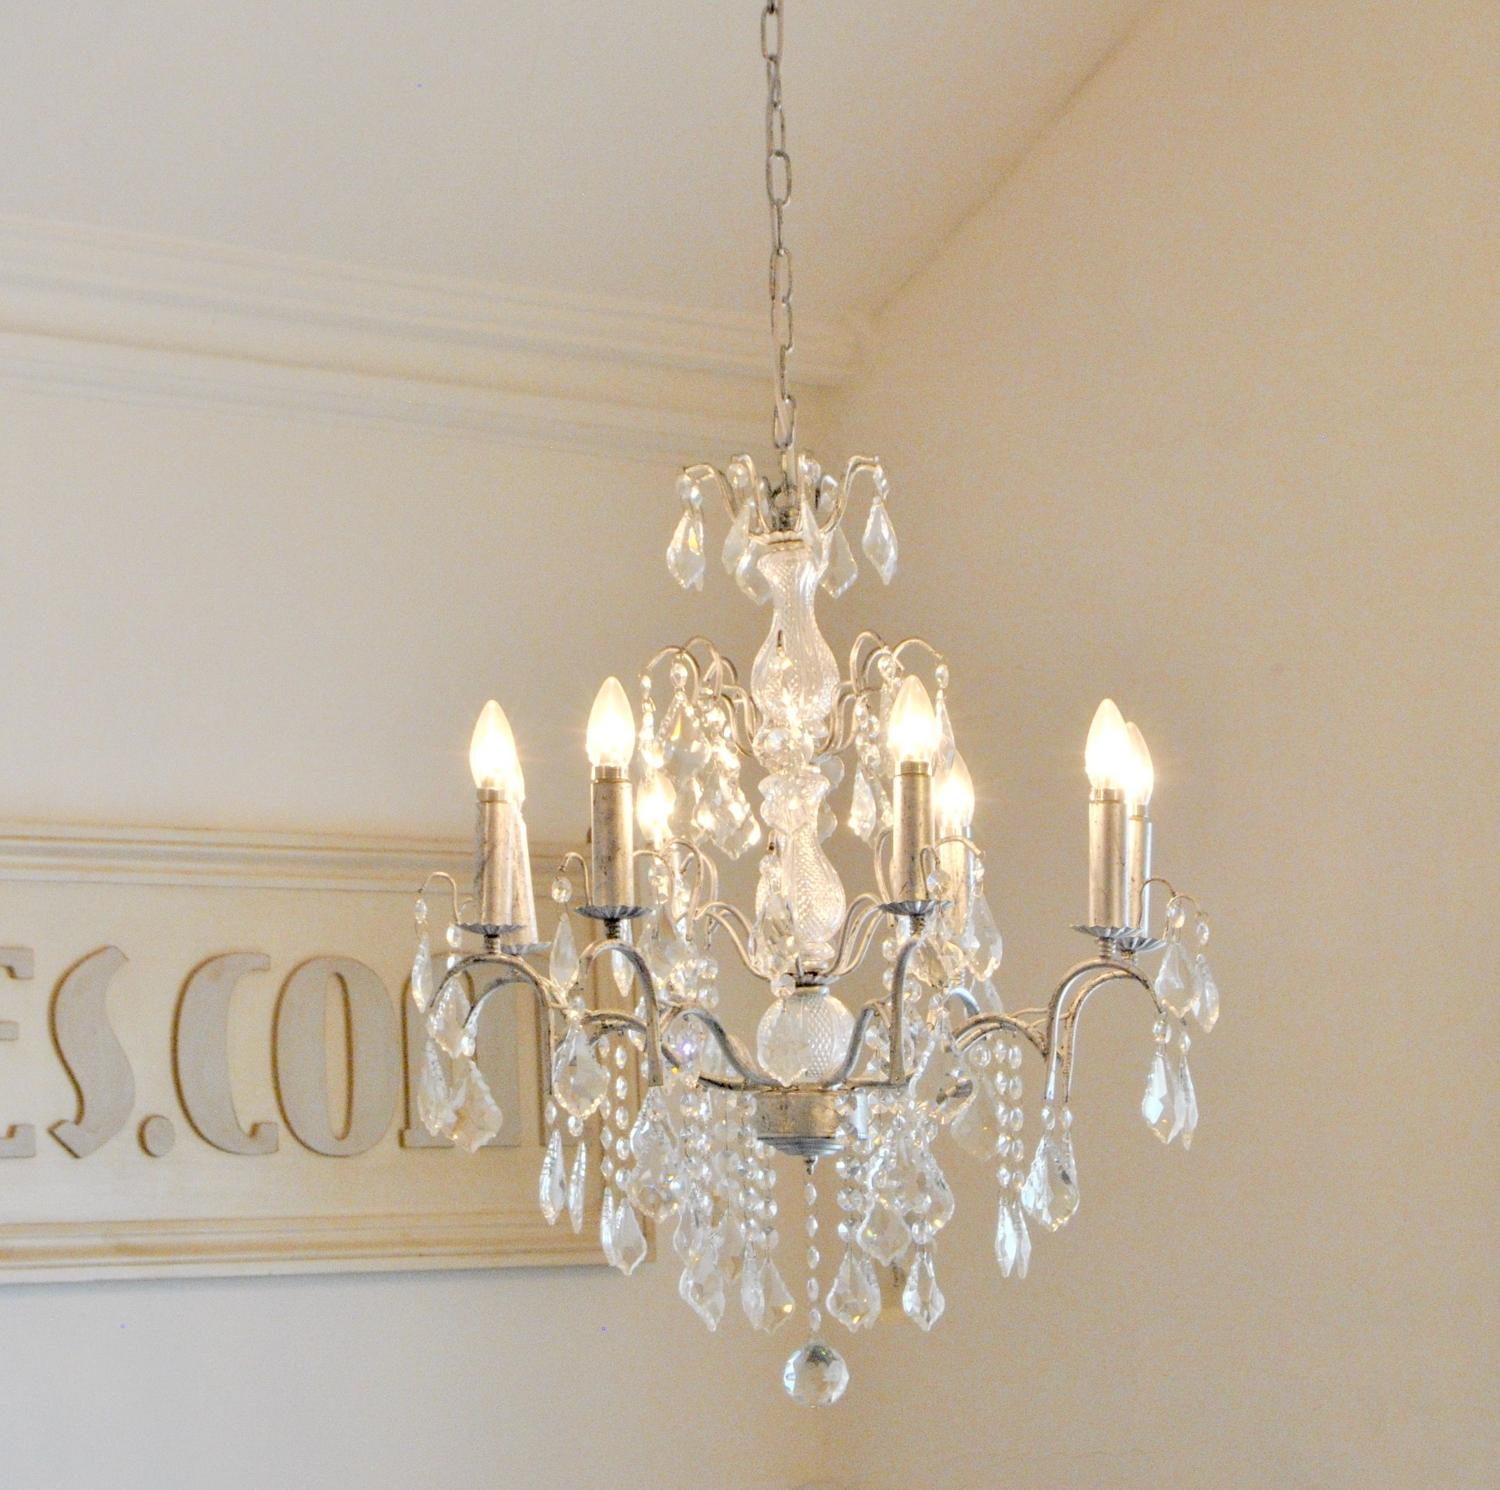 8 Branch Large Antique Silver Leaf Glass Chandelier